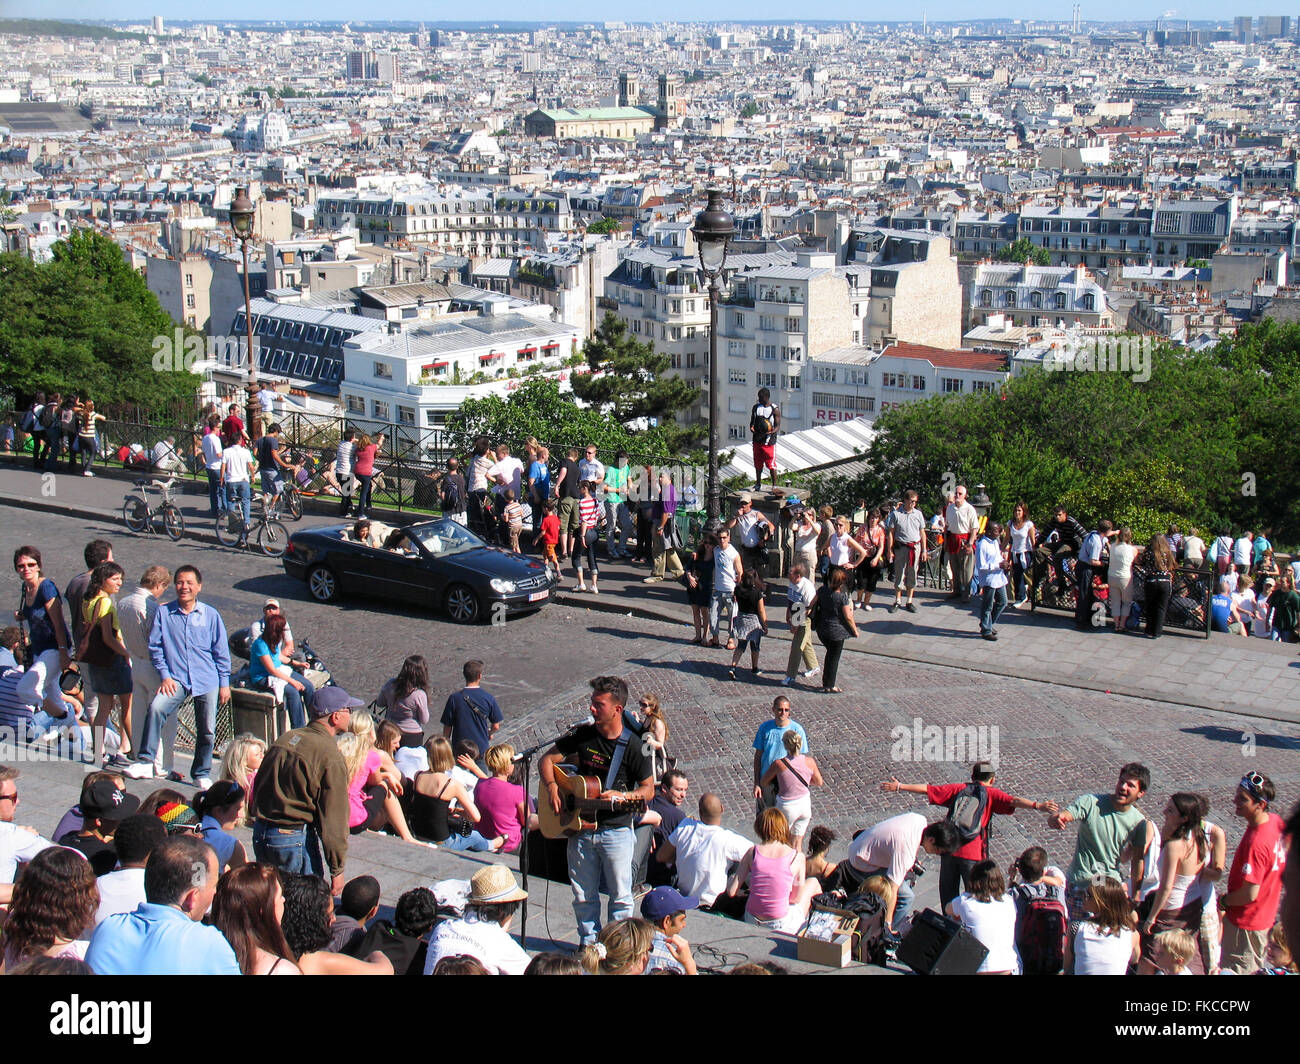 Tourists and buskers in Montmartre overlooking the panorama of Paris. - Stock Image